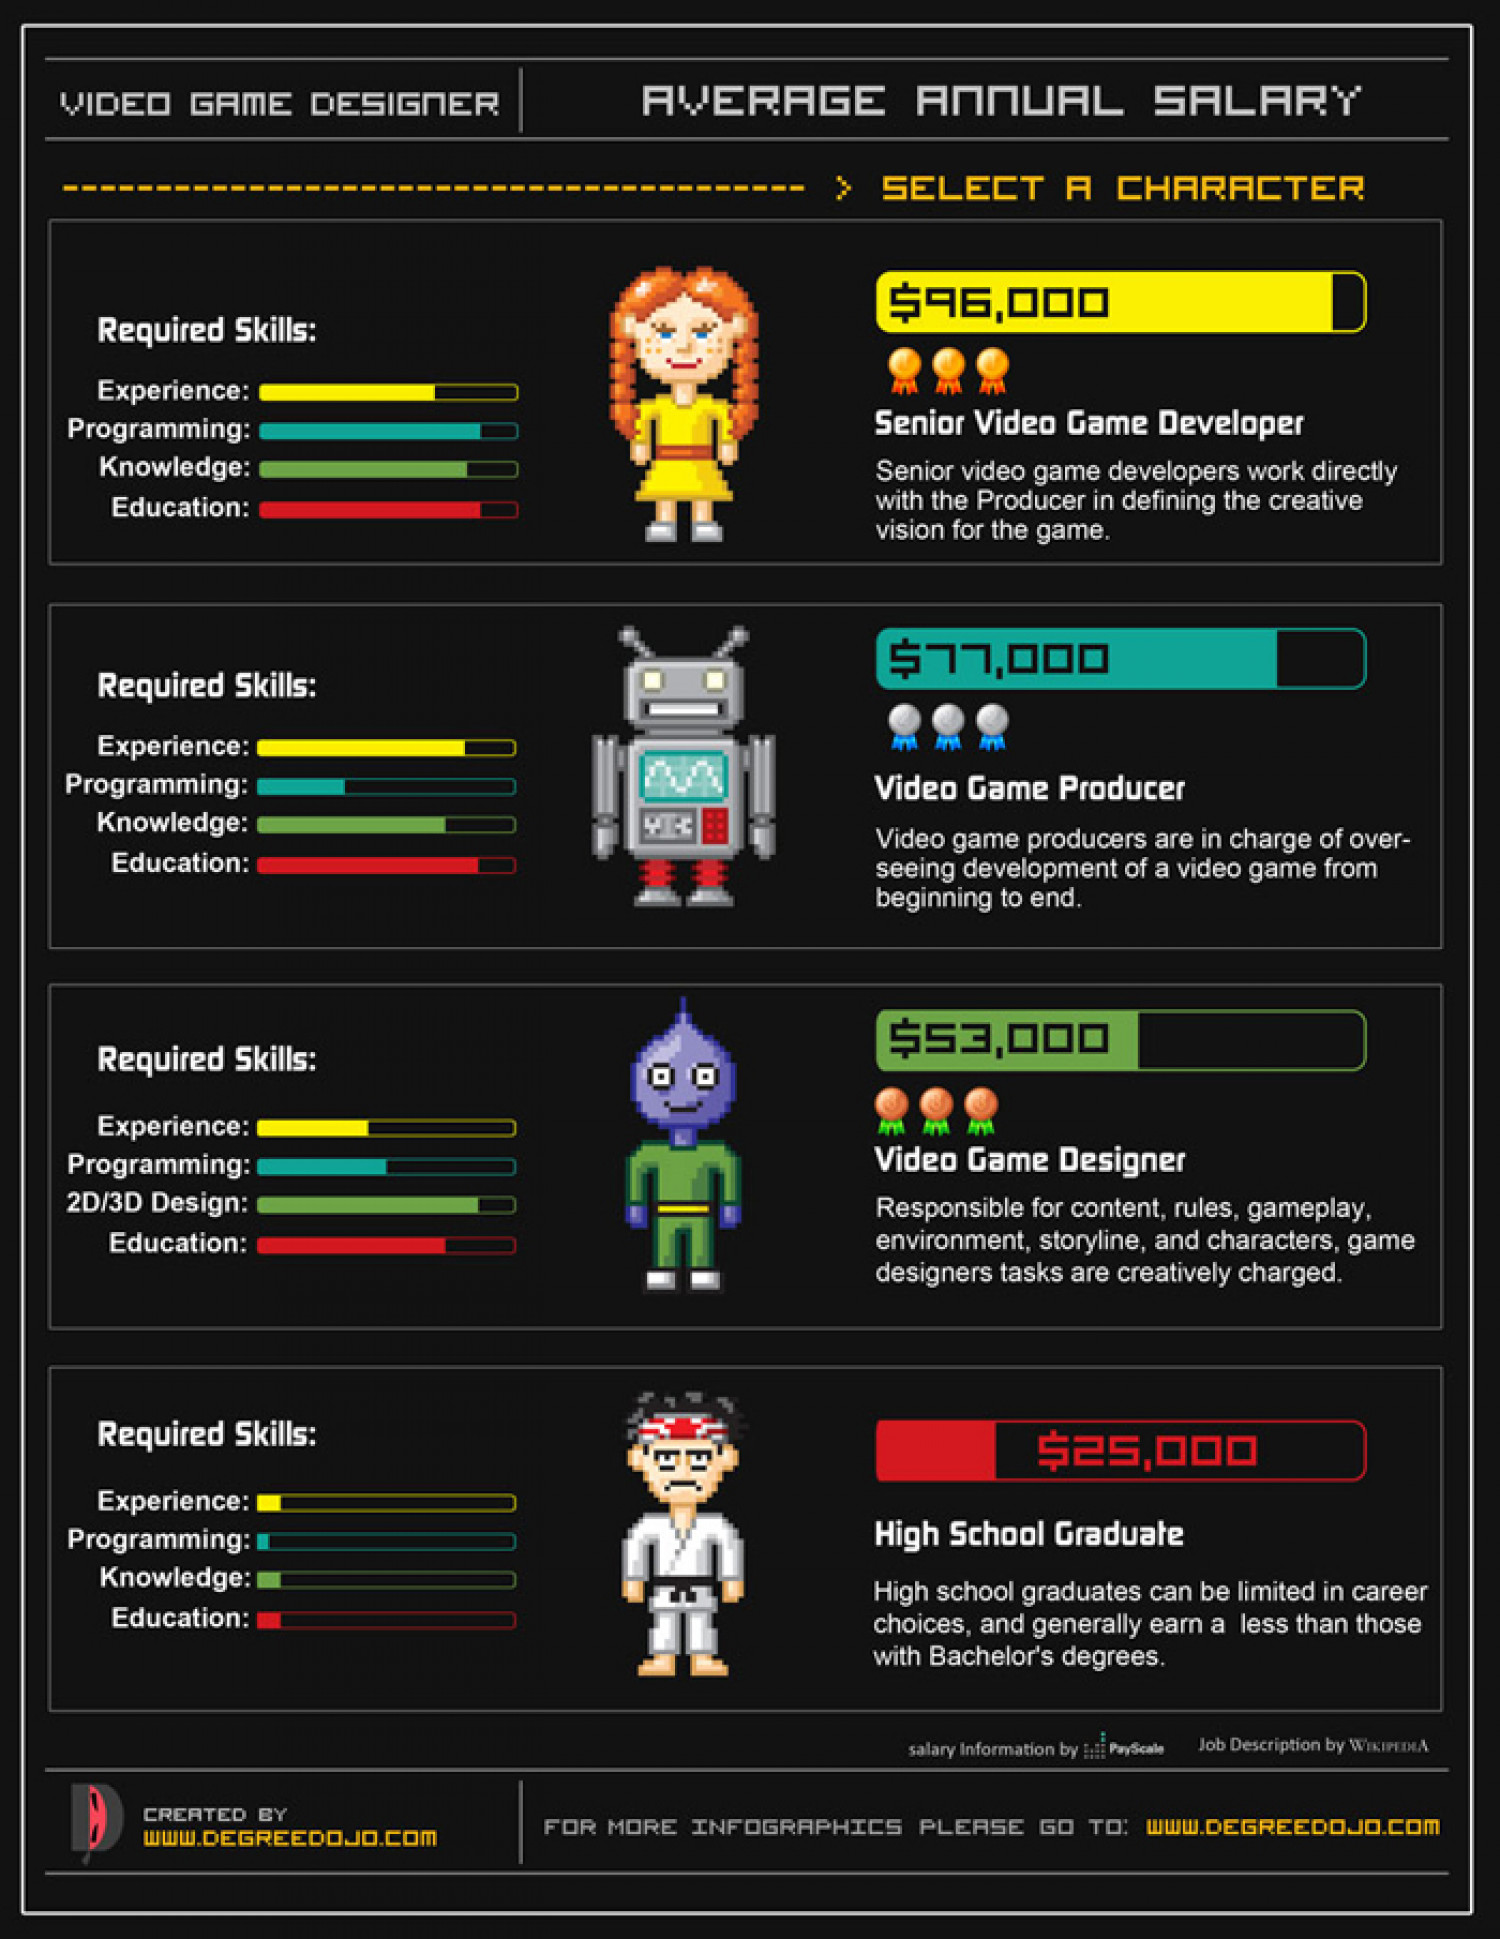 Video Designer Annual Average Salary Infographic